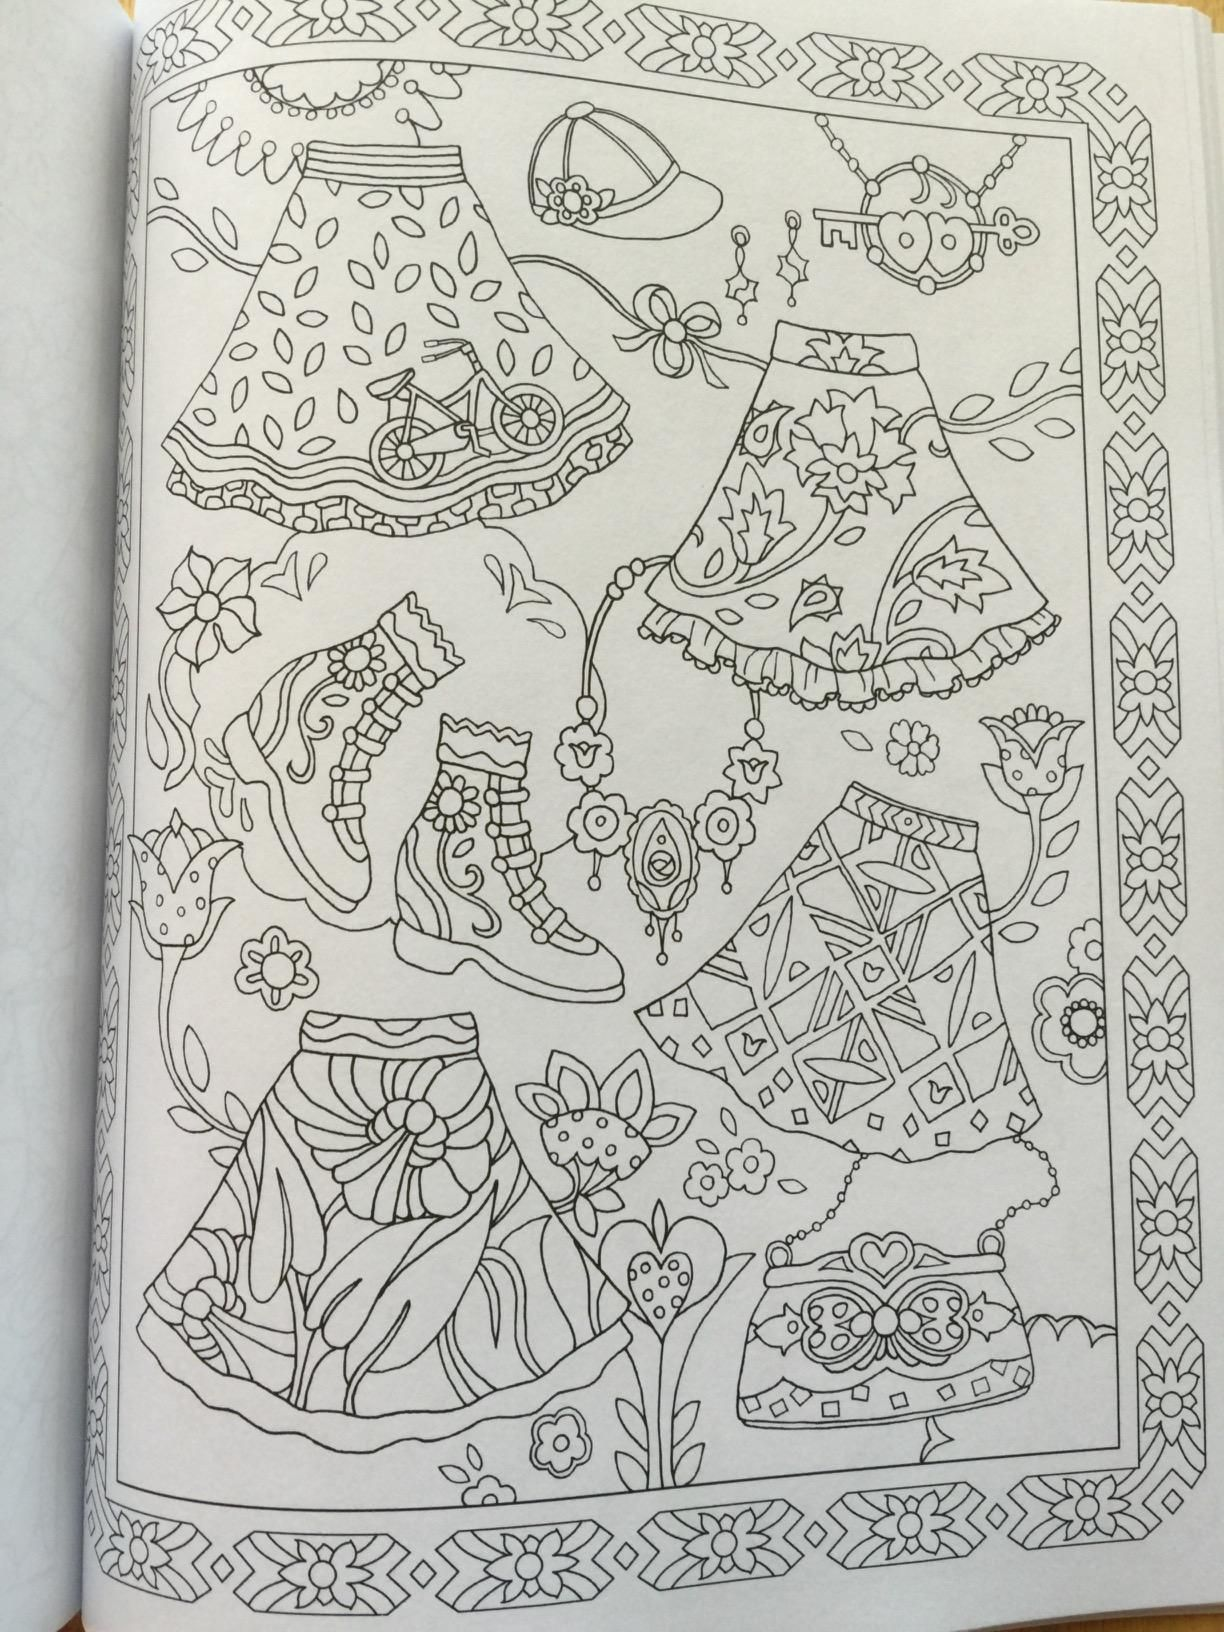 Fanciful Fashions Coloring Book Marjorie Sarnat Amazon Books